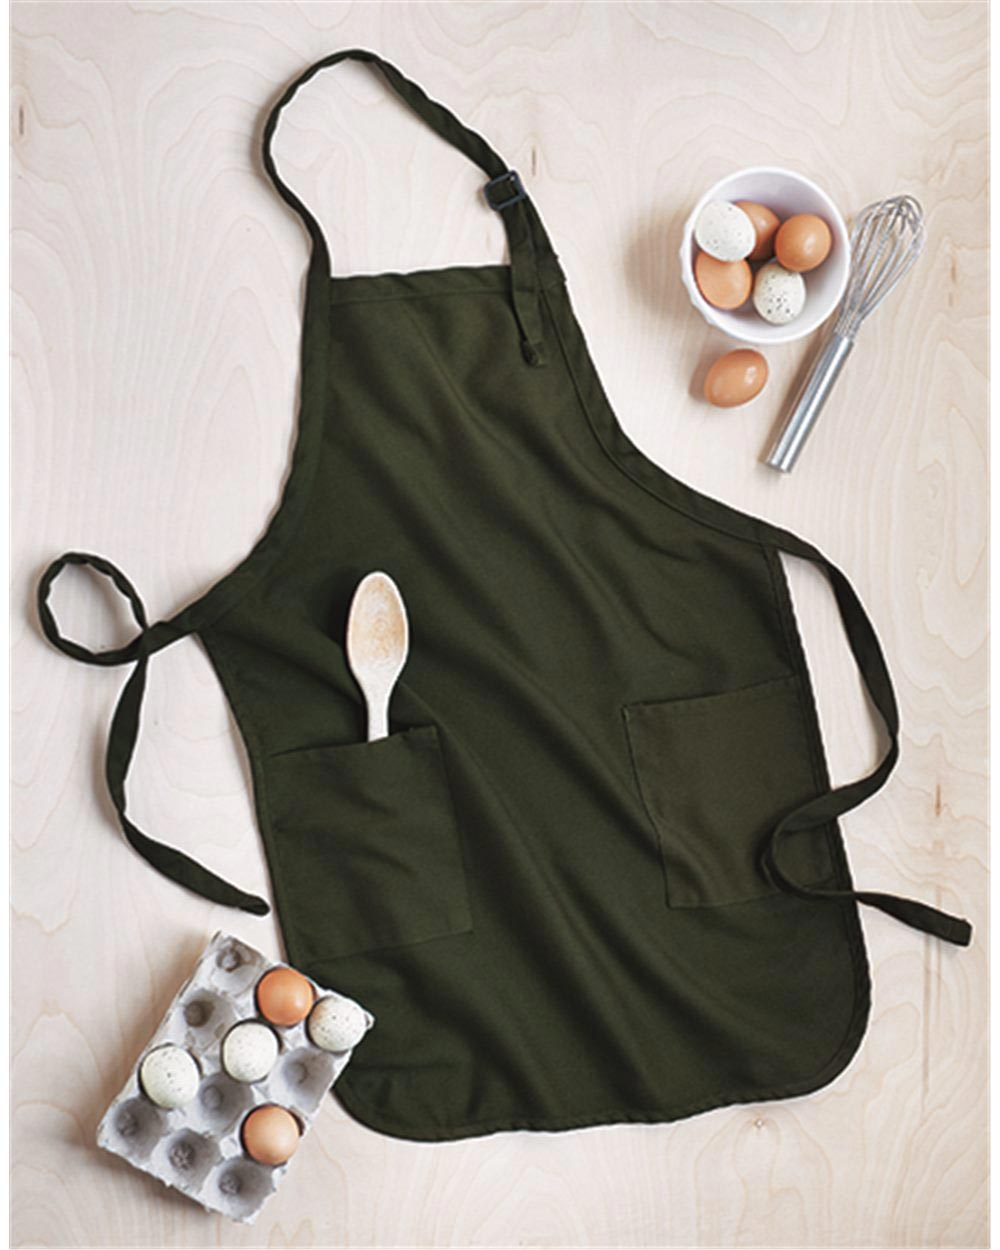 Q-Tees Q4350 - Full-Length Apron With Pockets